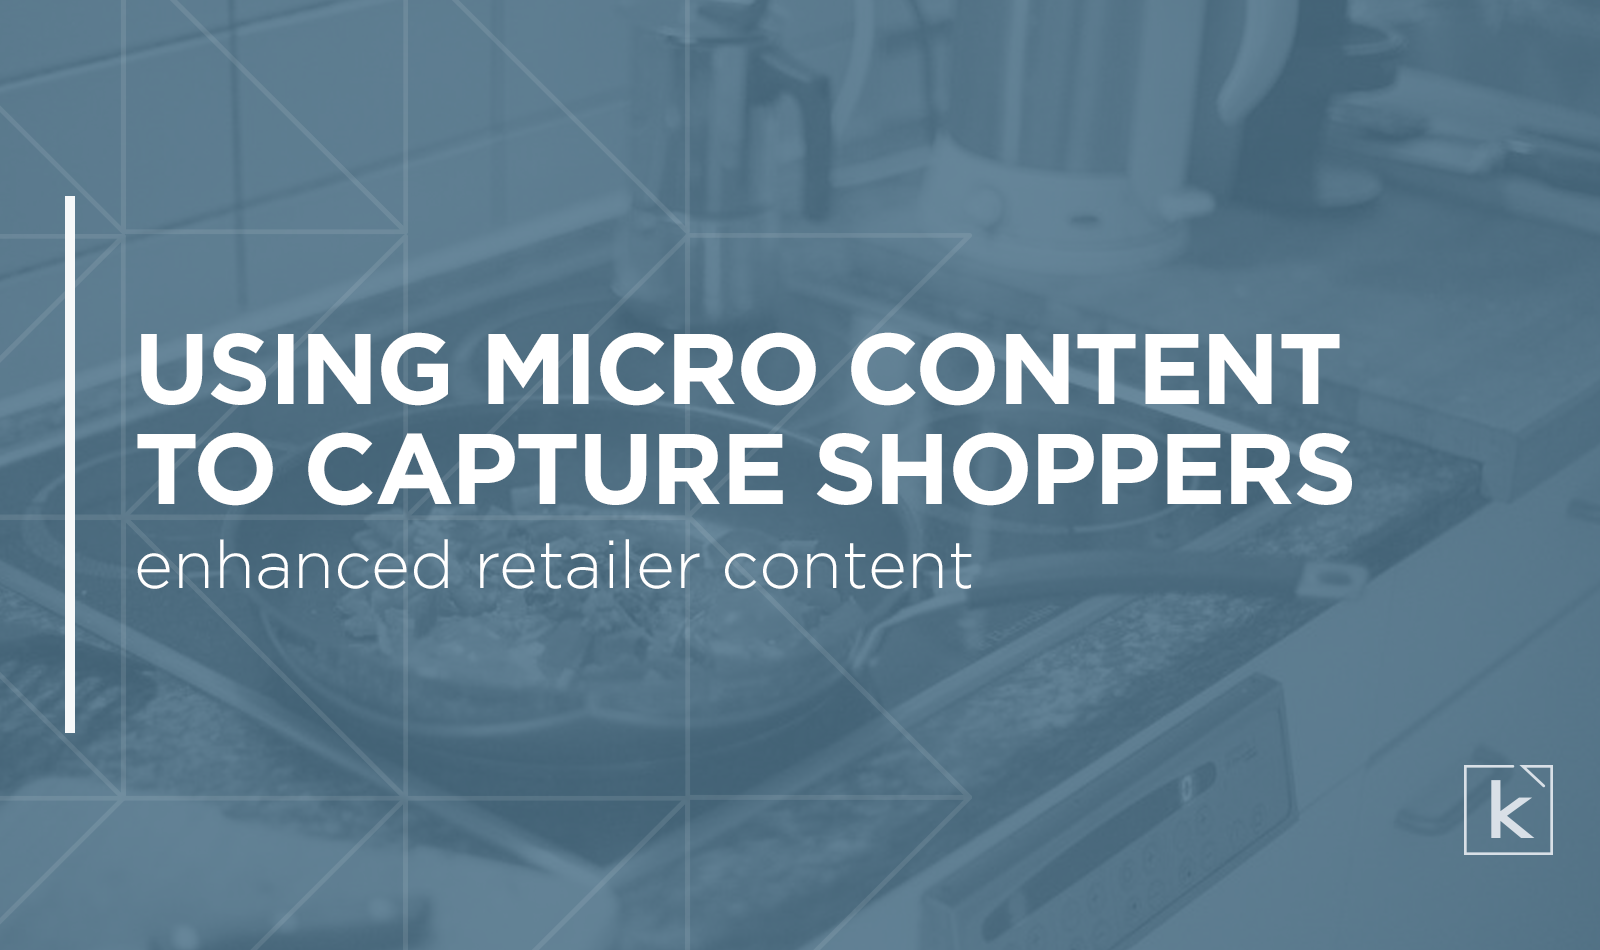 micro-content-capture-shoppers-oven-cooking